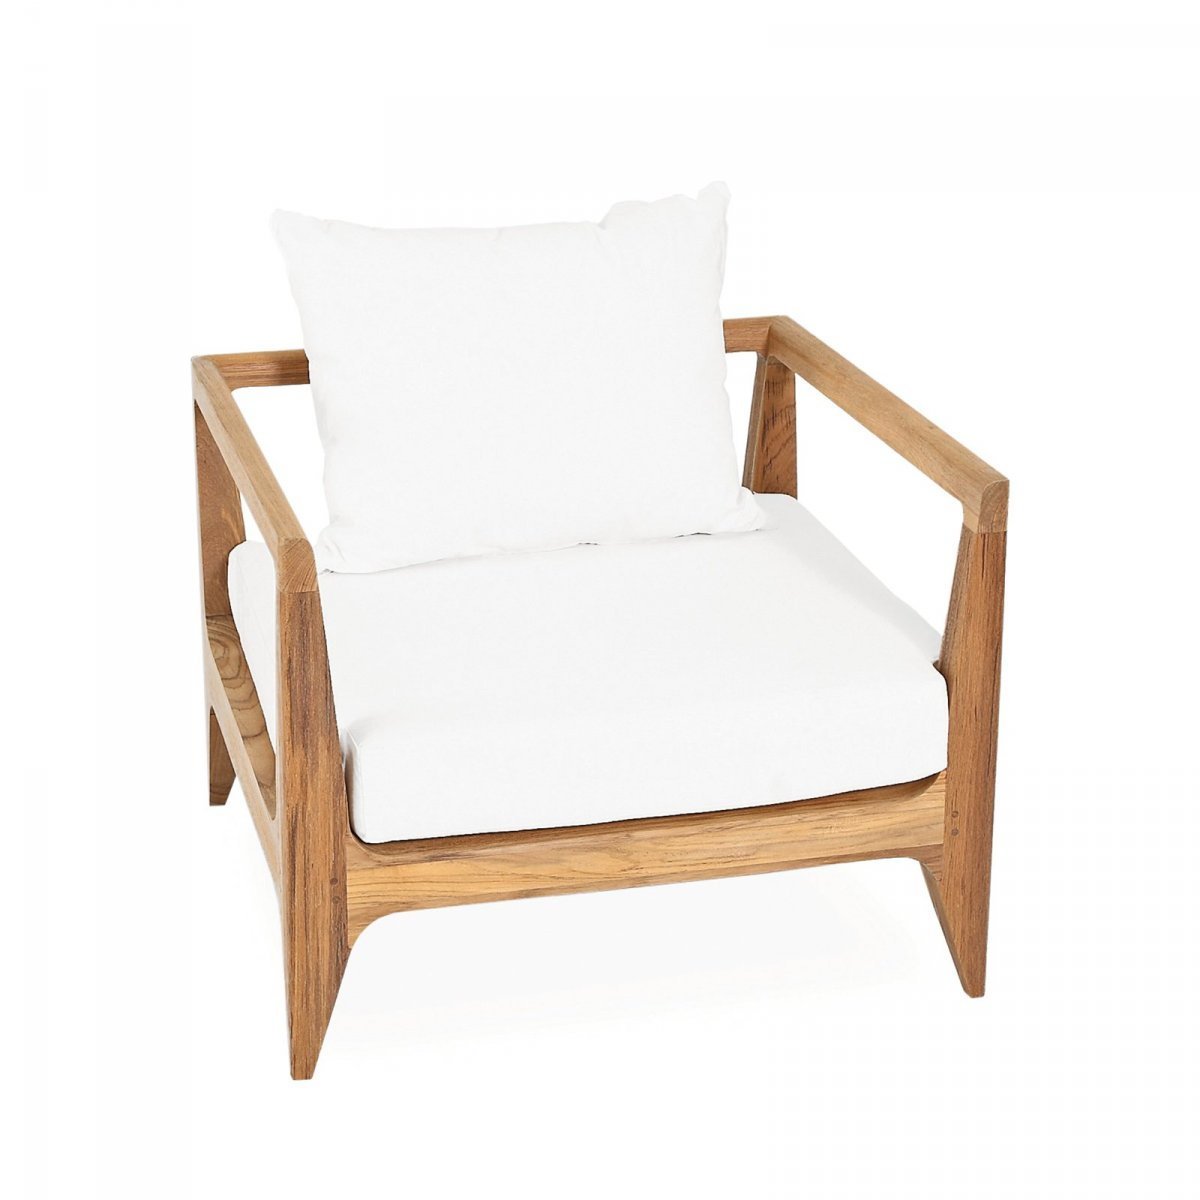 300-LC Lounge Chair.